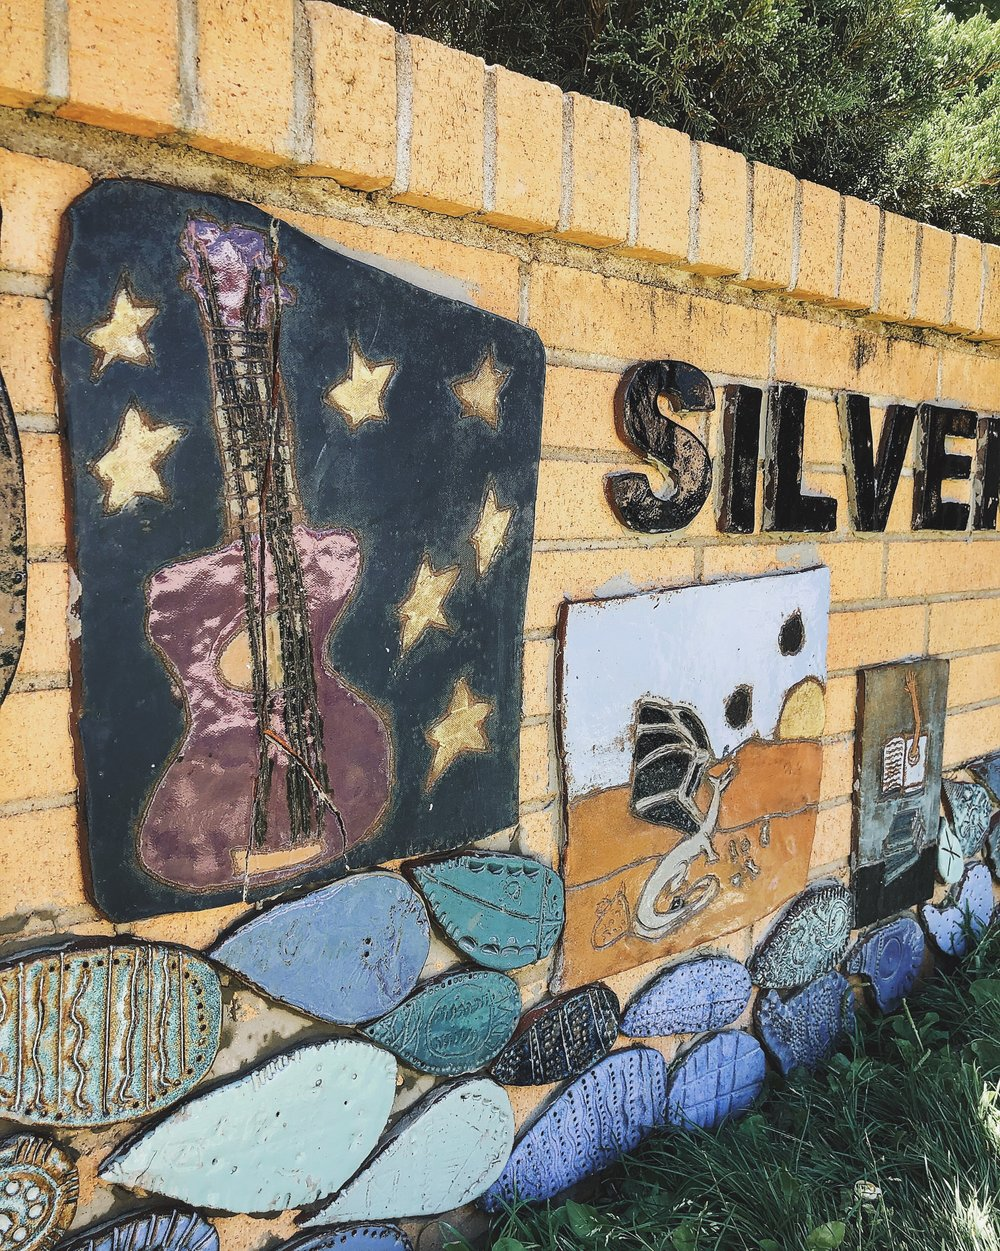 The Public Library of Silver City